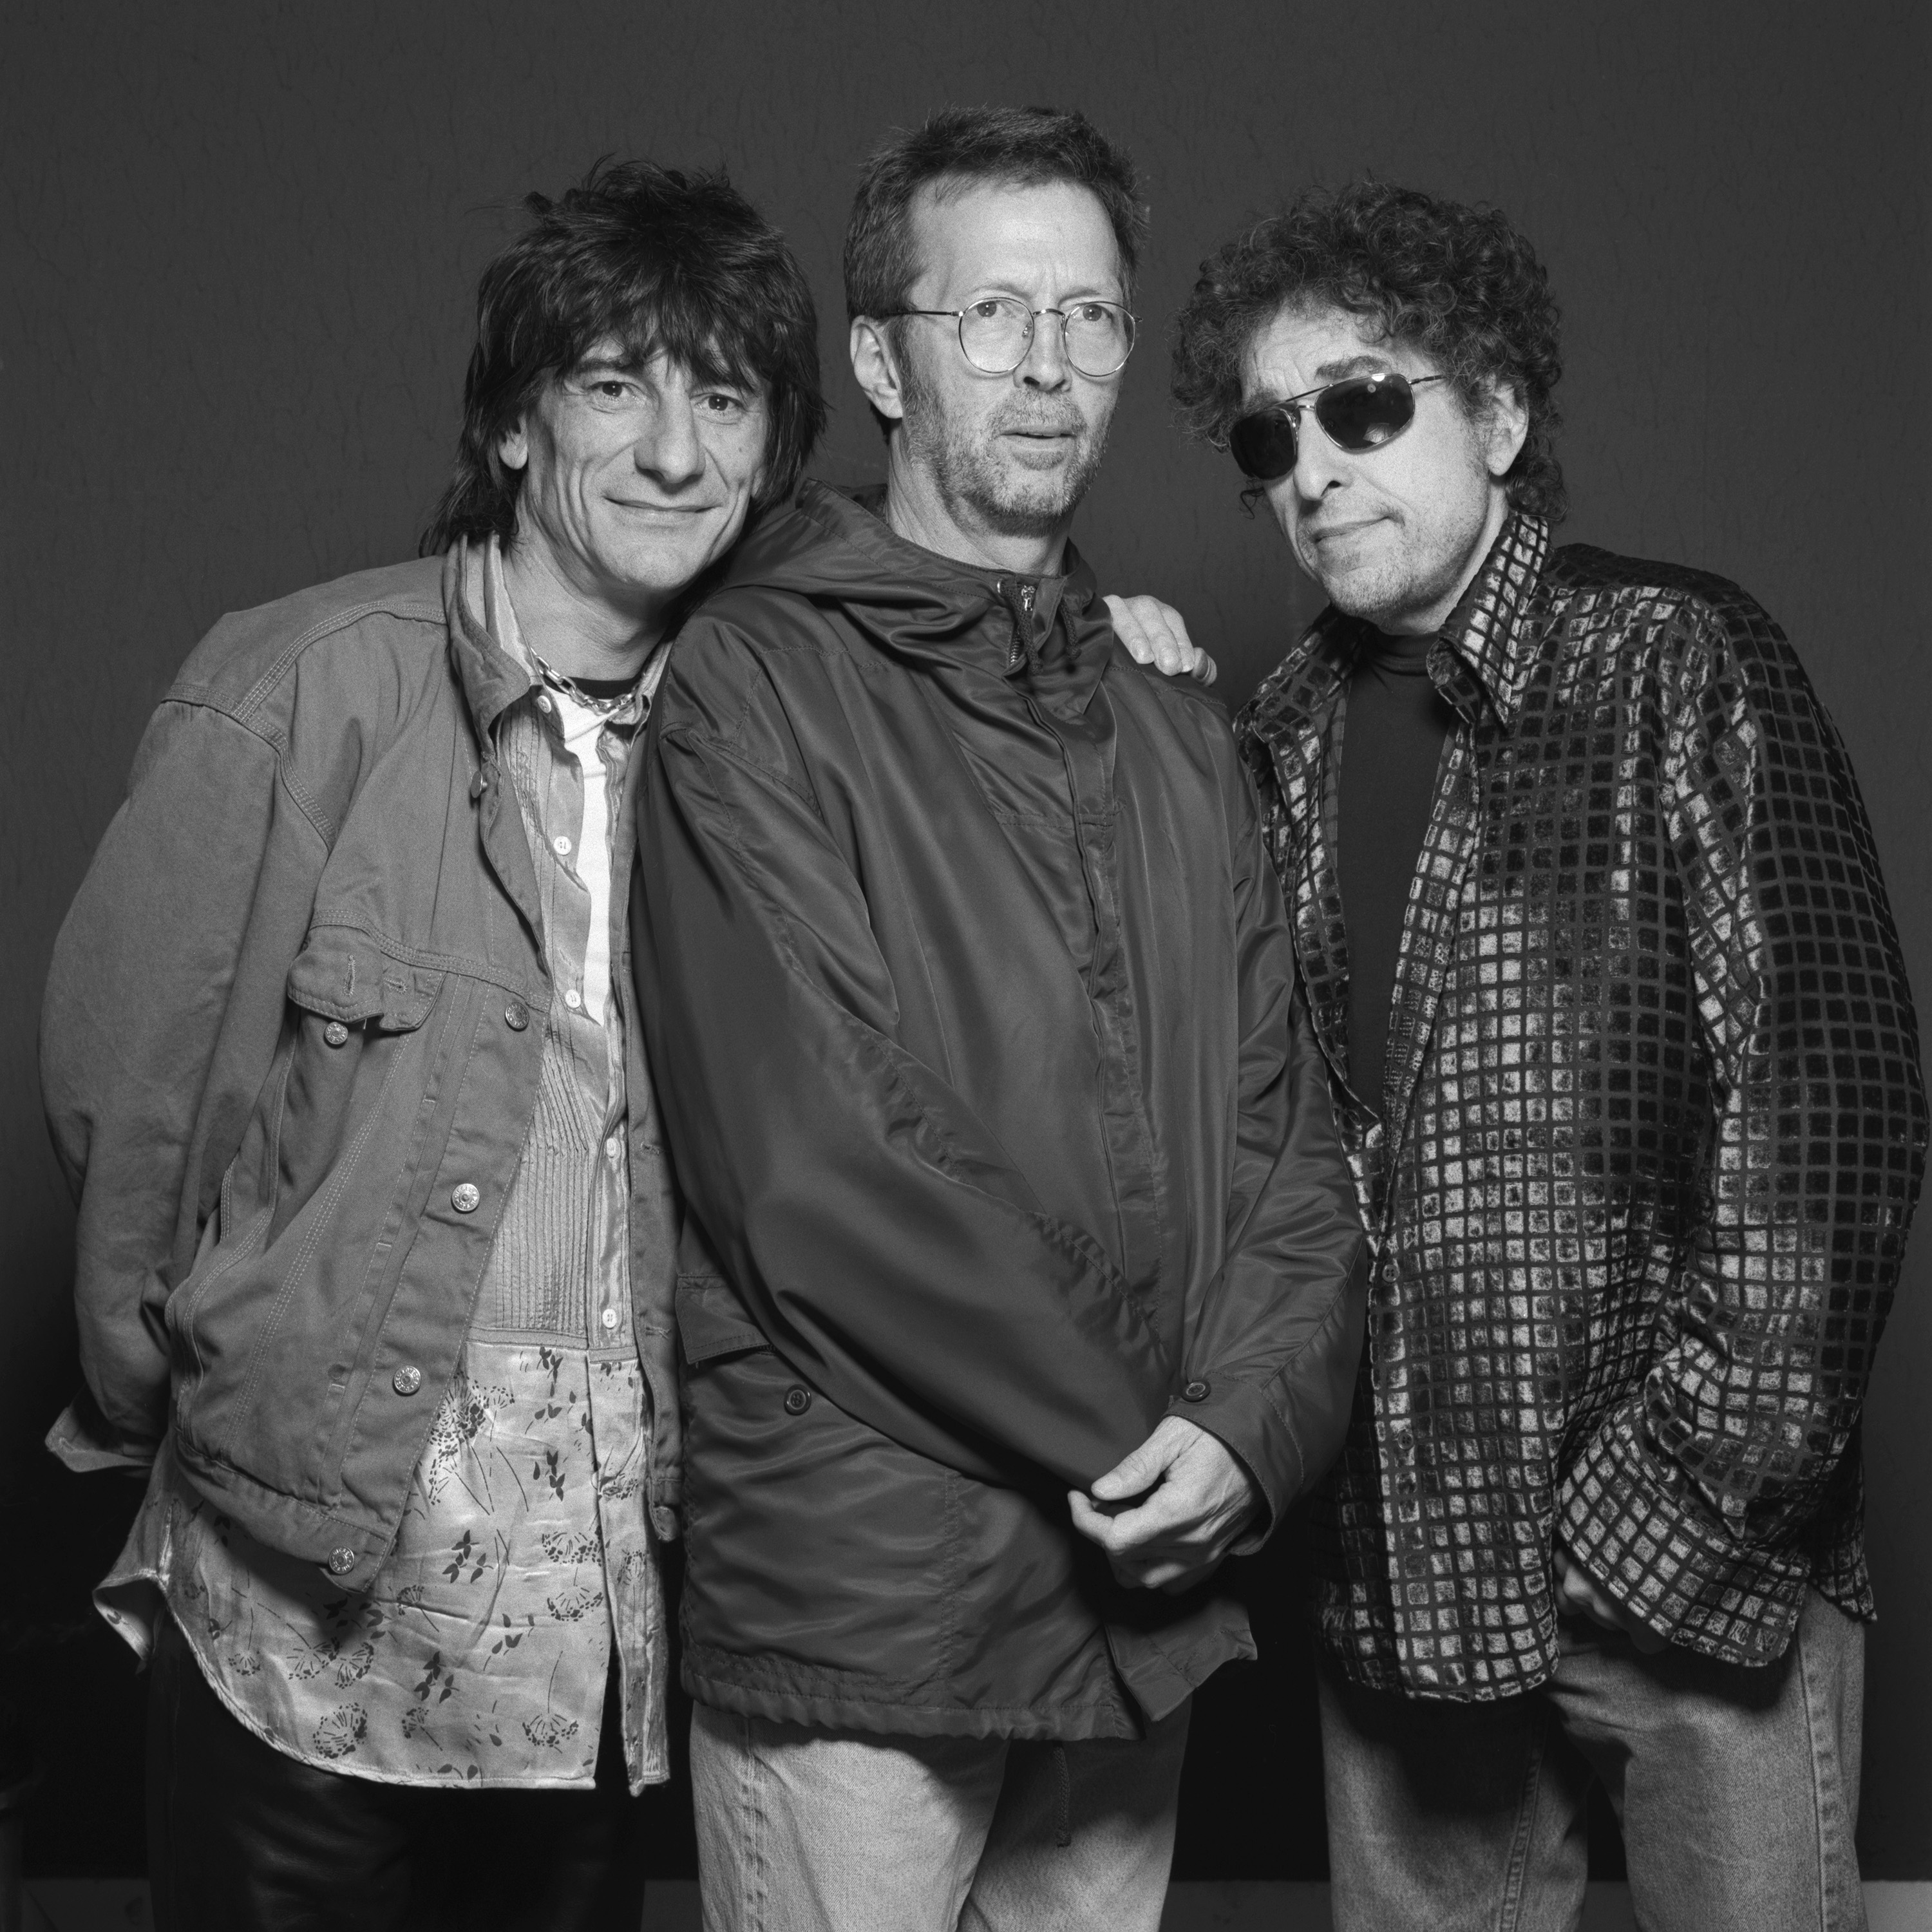 Ronnie Wood, Erica Clapton and Bob Dylan